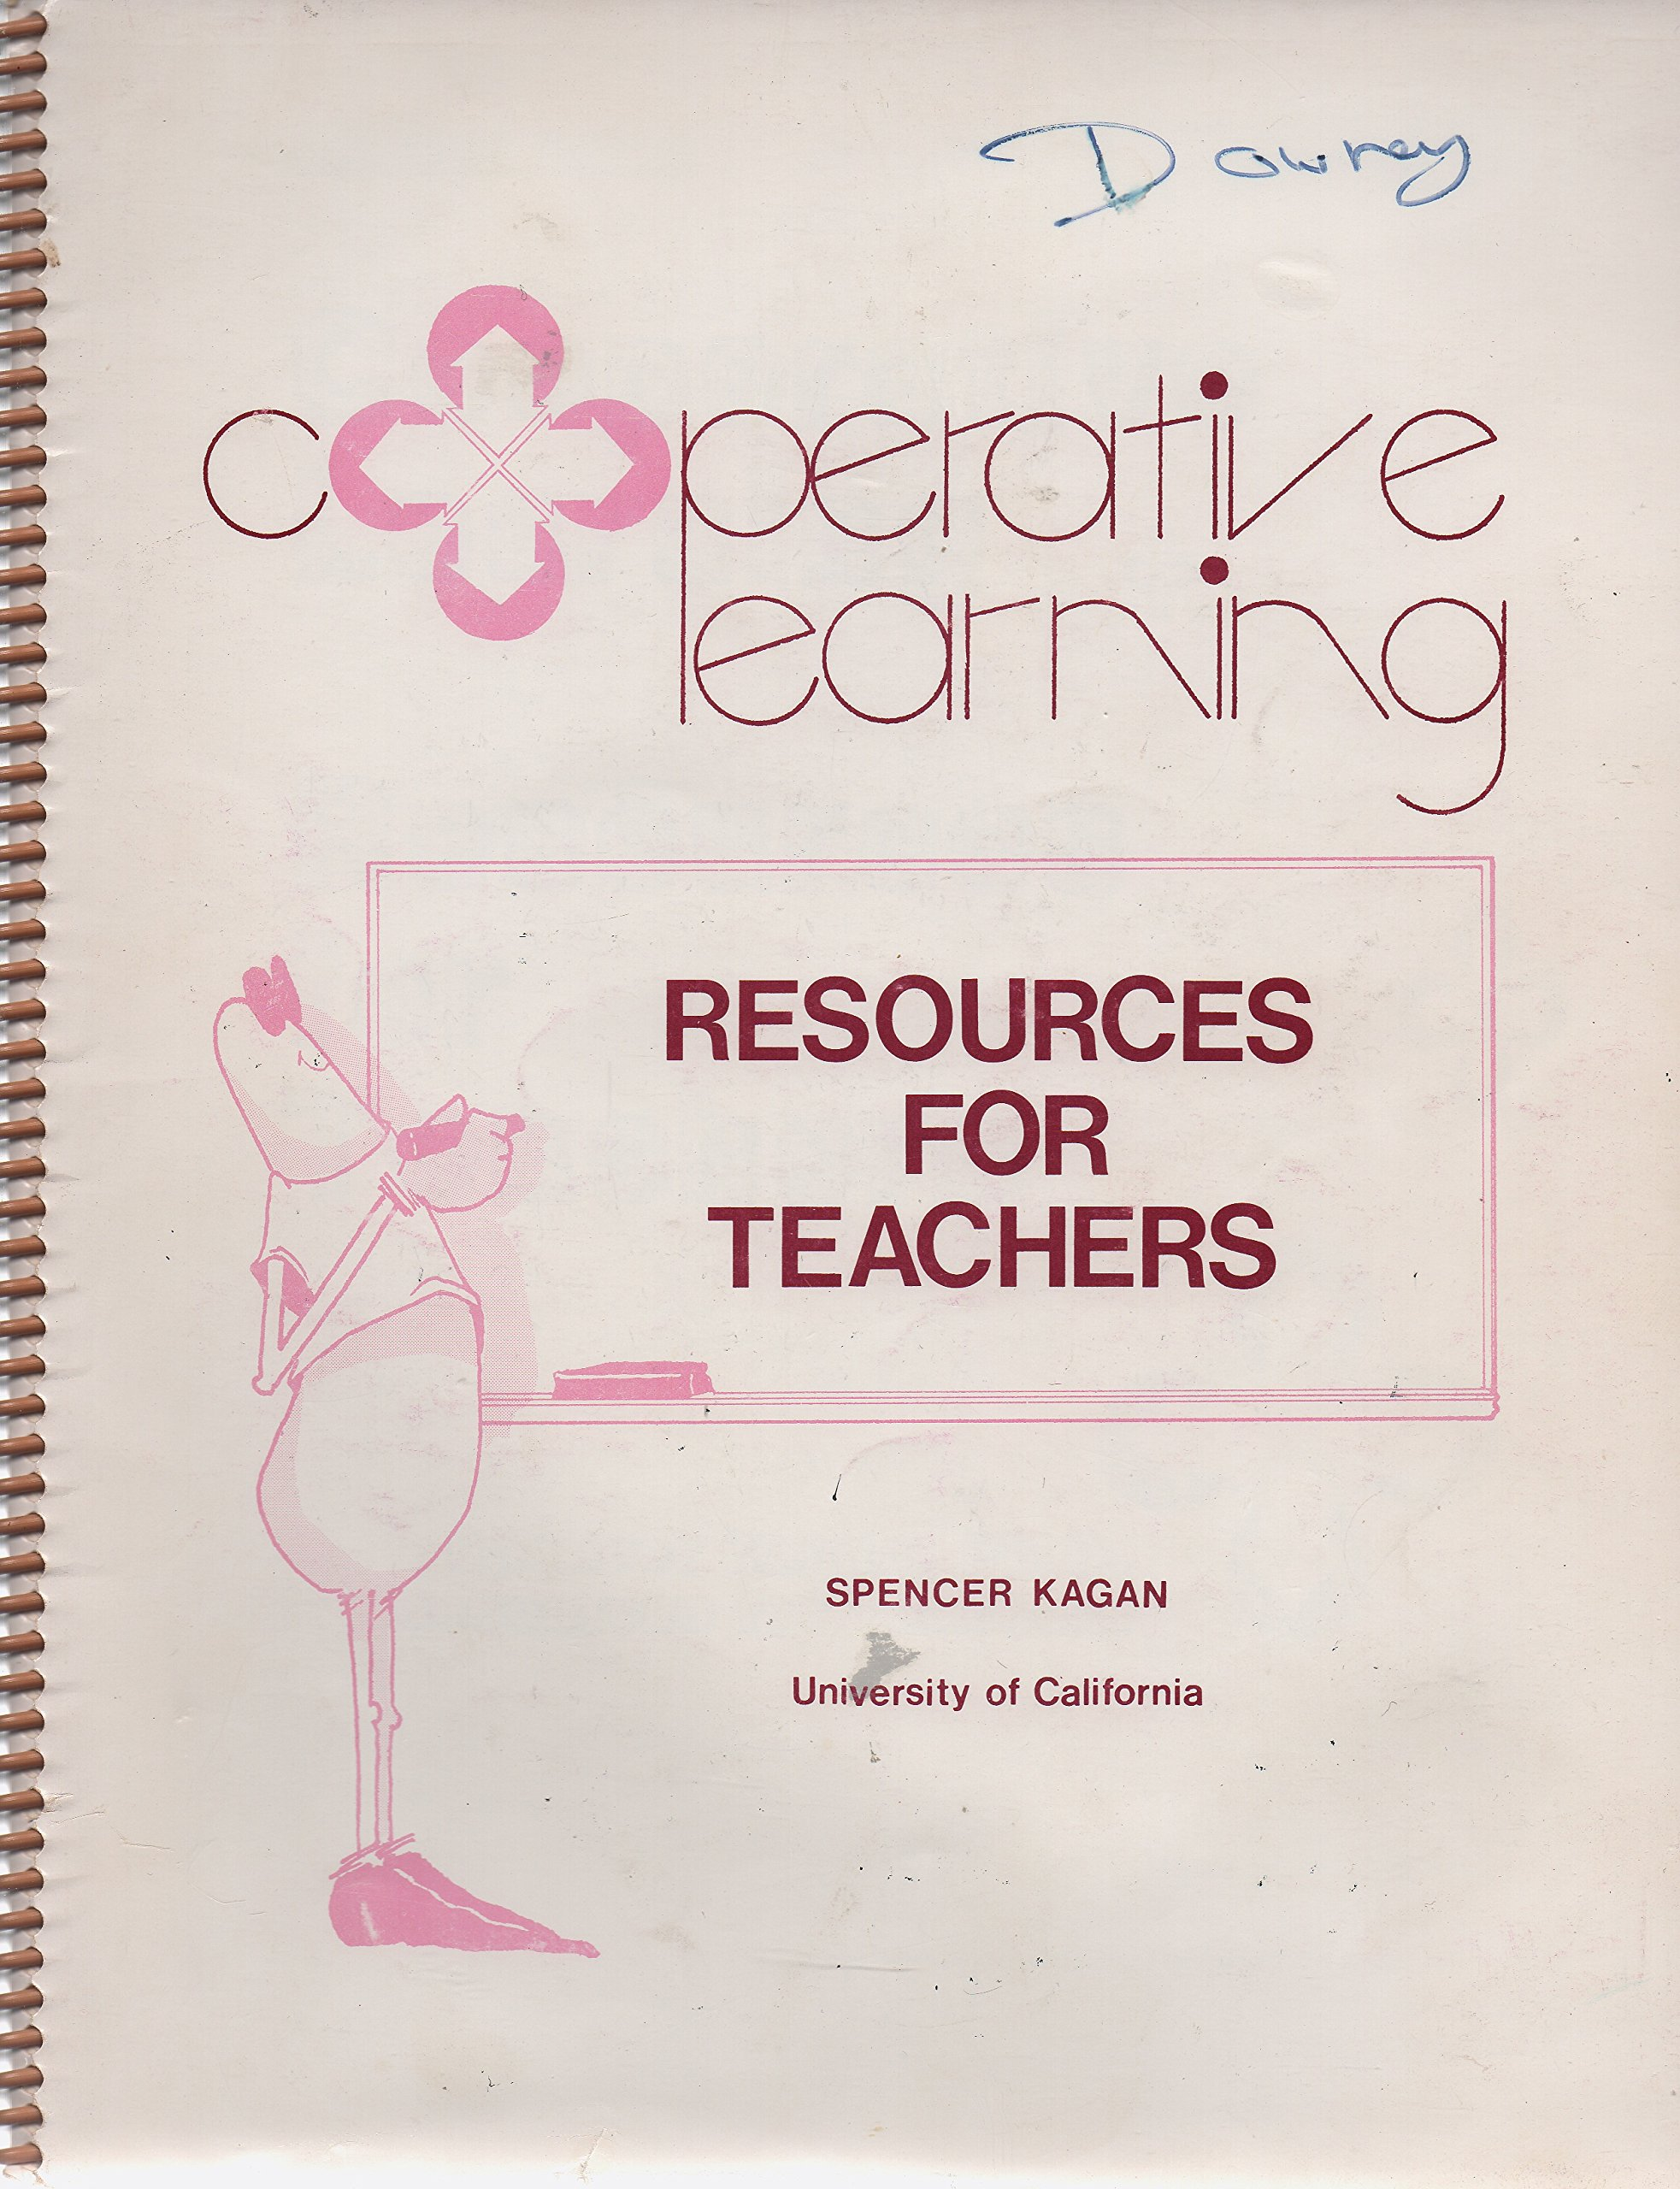 Cooperative Learning Resources For Teachers Spencer Kagan Amazon